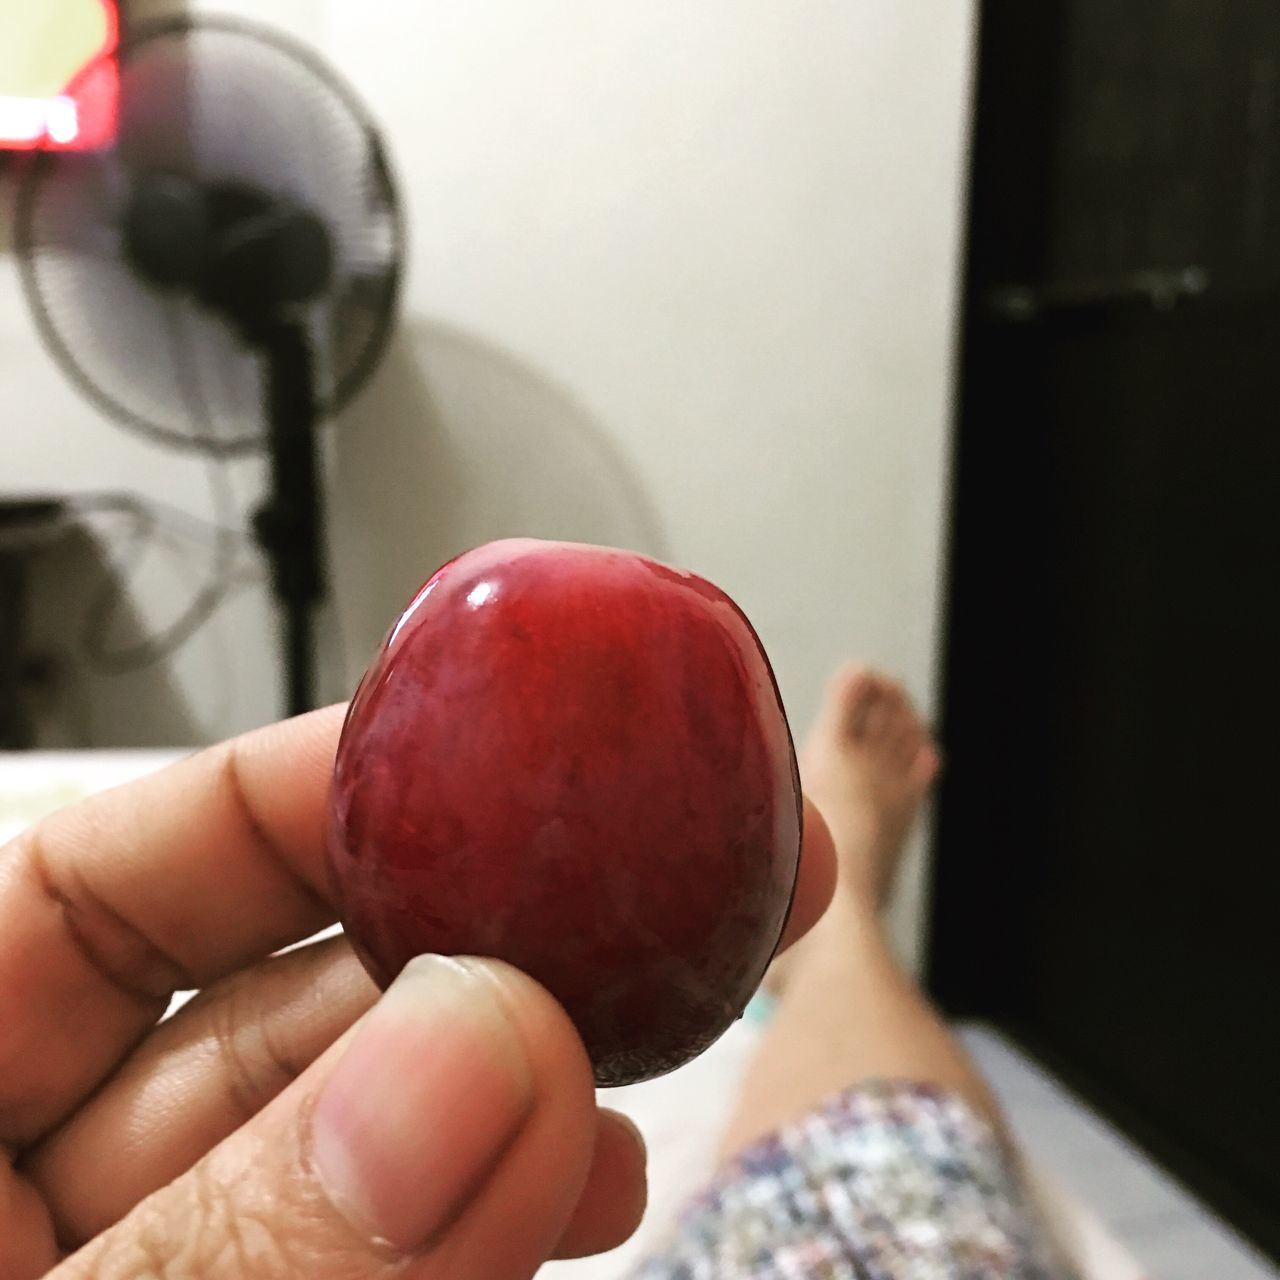 human hand, one person, real people, human body part, fruit, holding, food and drink, food, freshness, indoors, personal perspective, healthy eating, apple - fruit, red, lifestyles, close-up, leisure activity, day, people